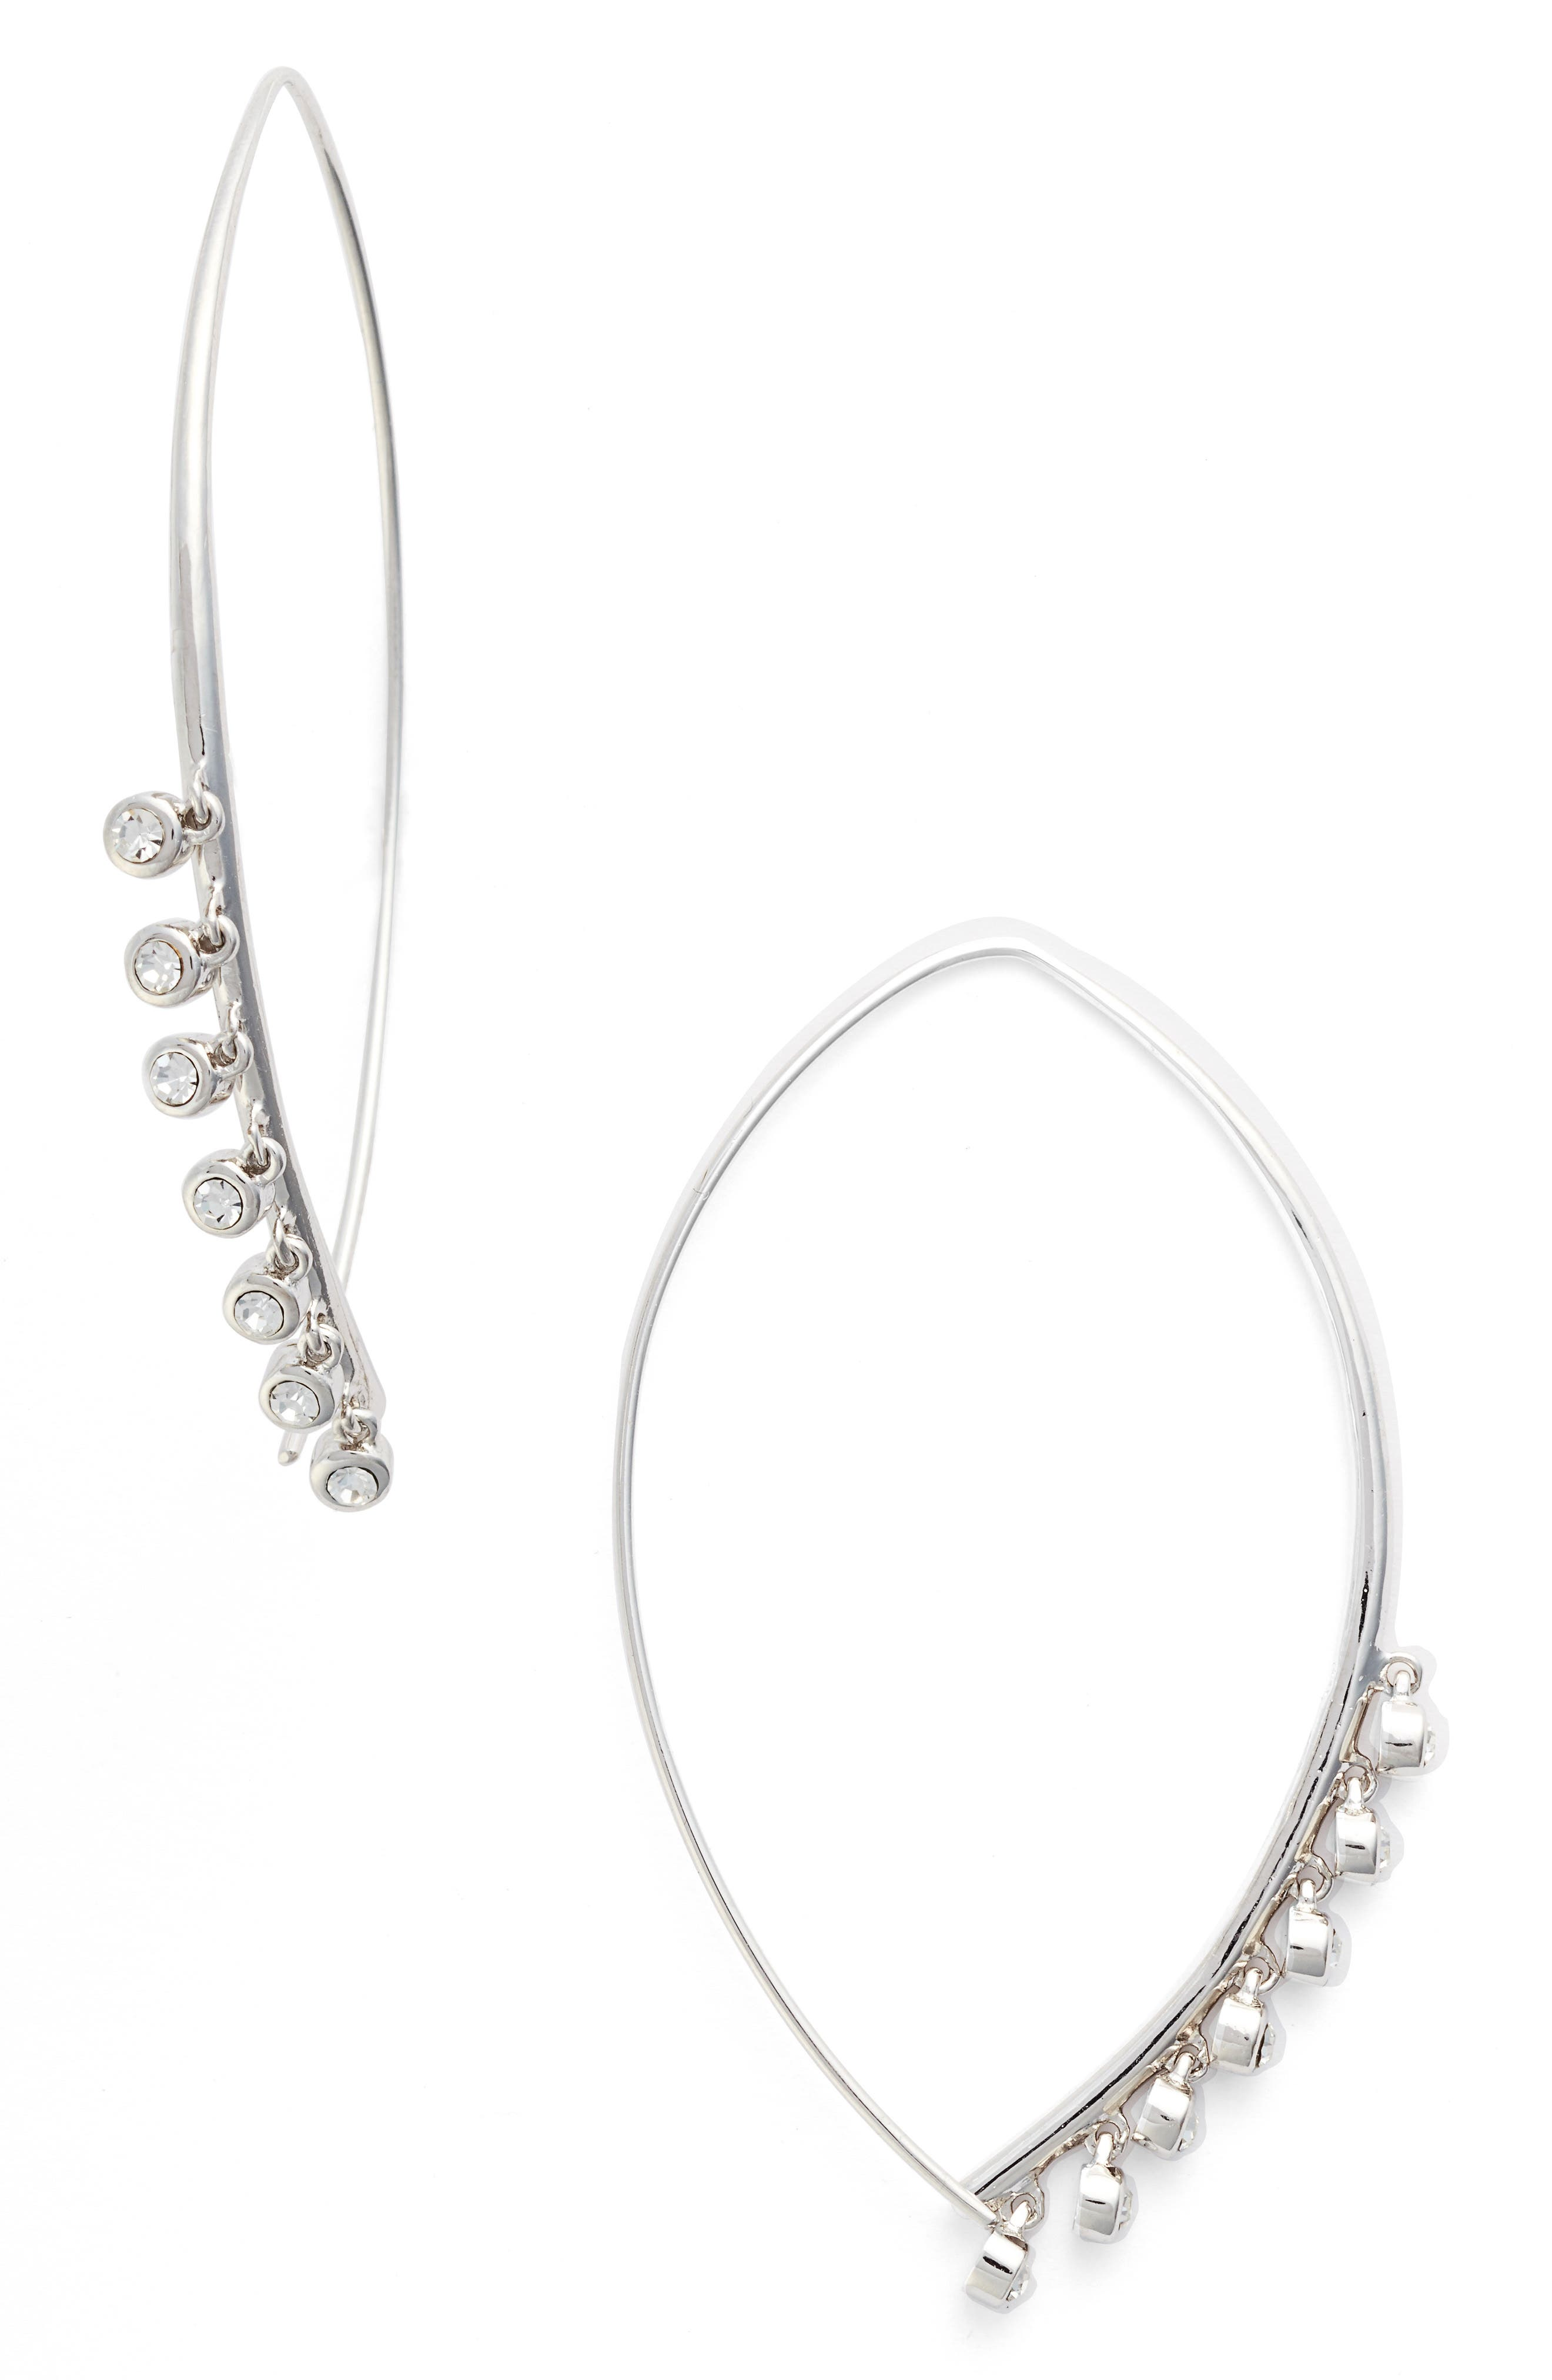 Lure Threader Earrings,                         Main,                         color, Silver/ Clear